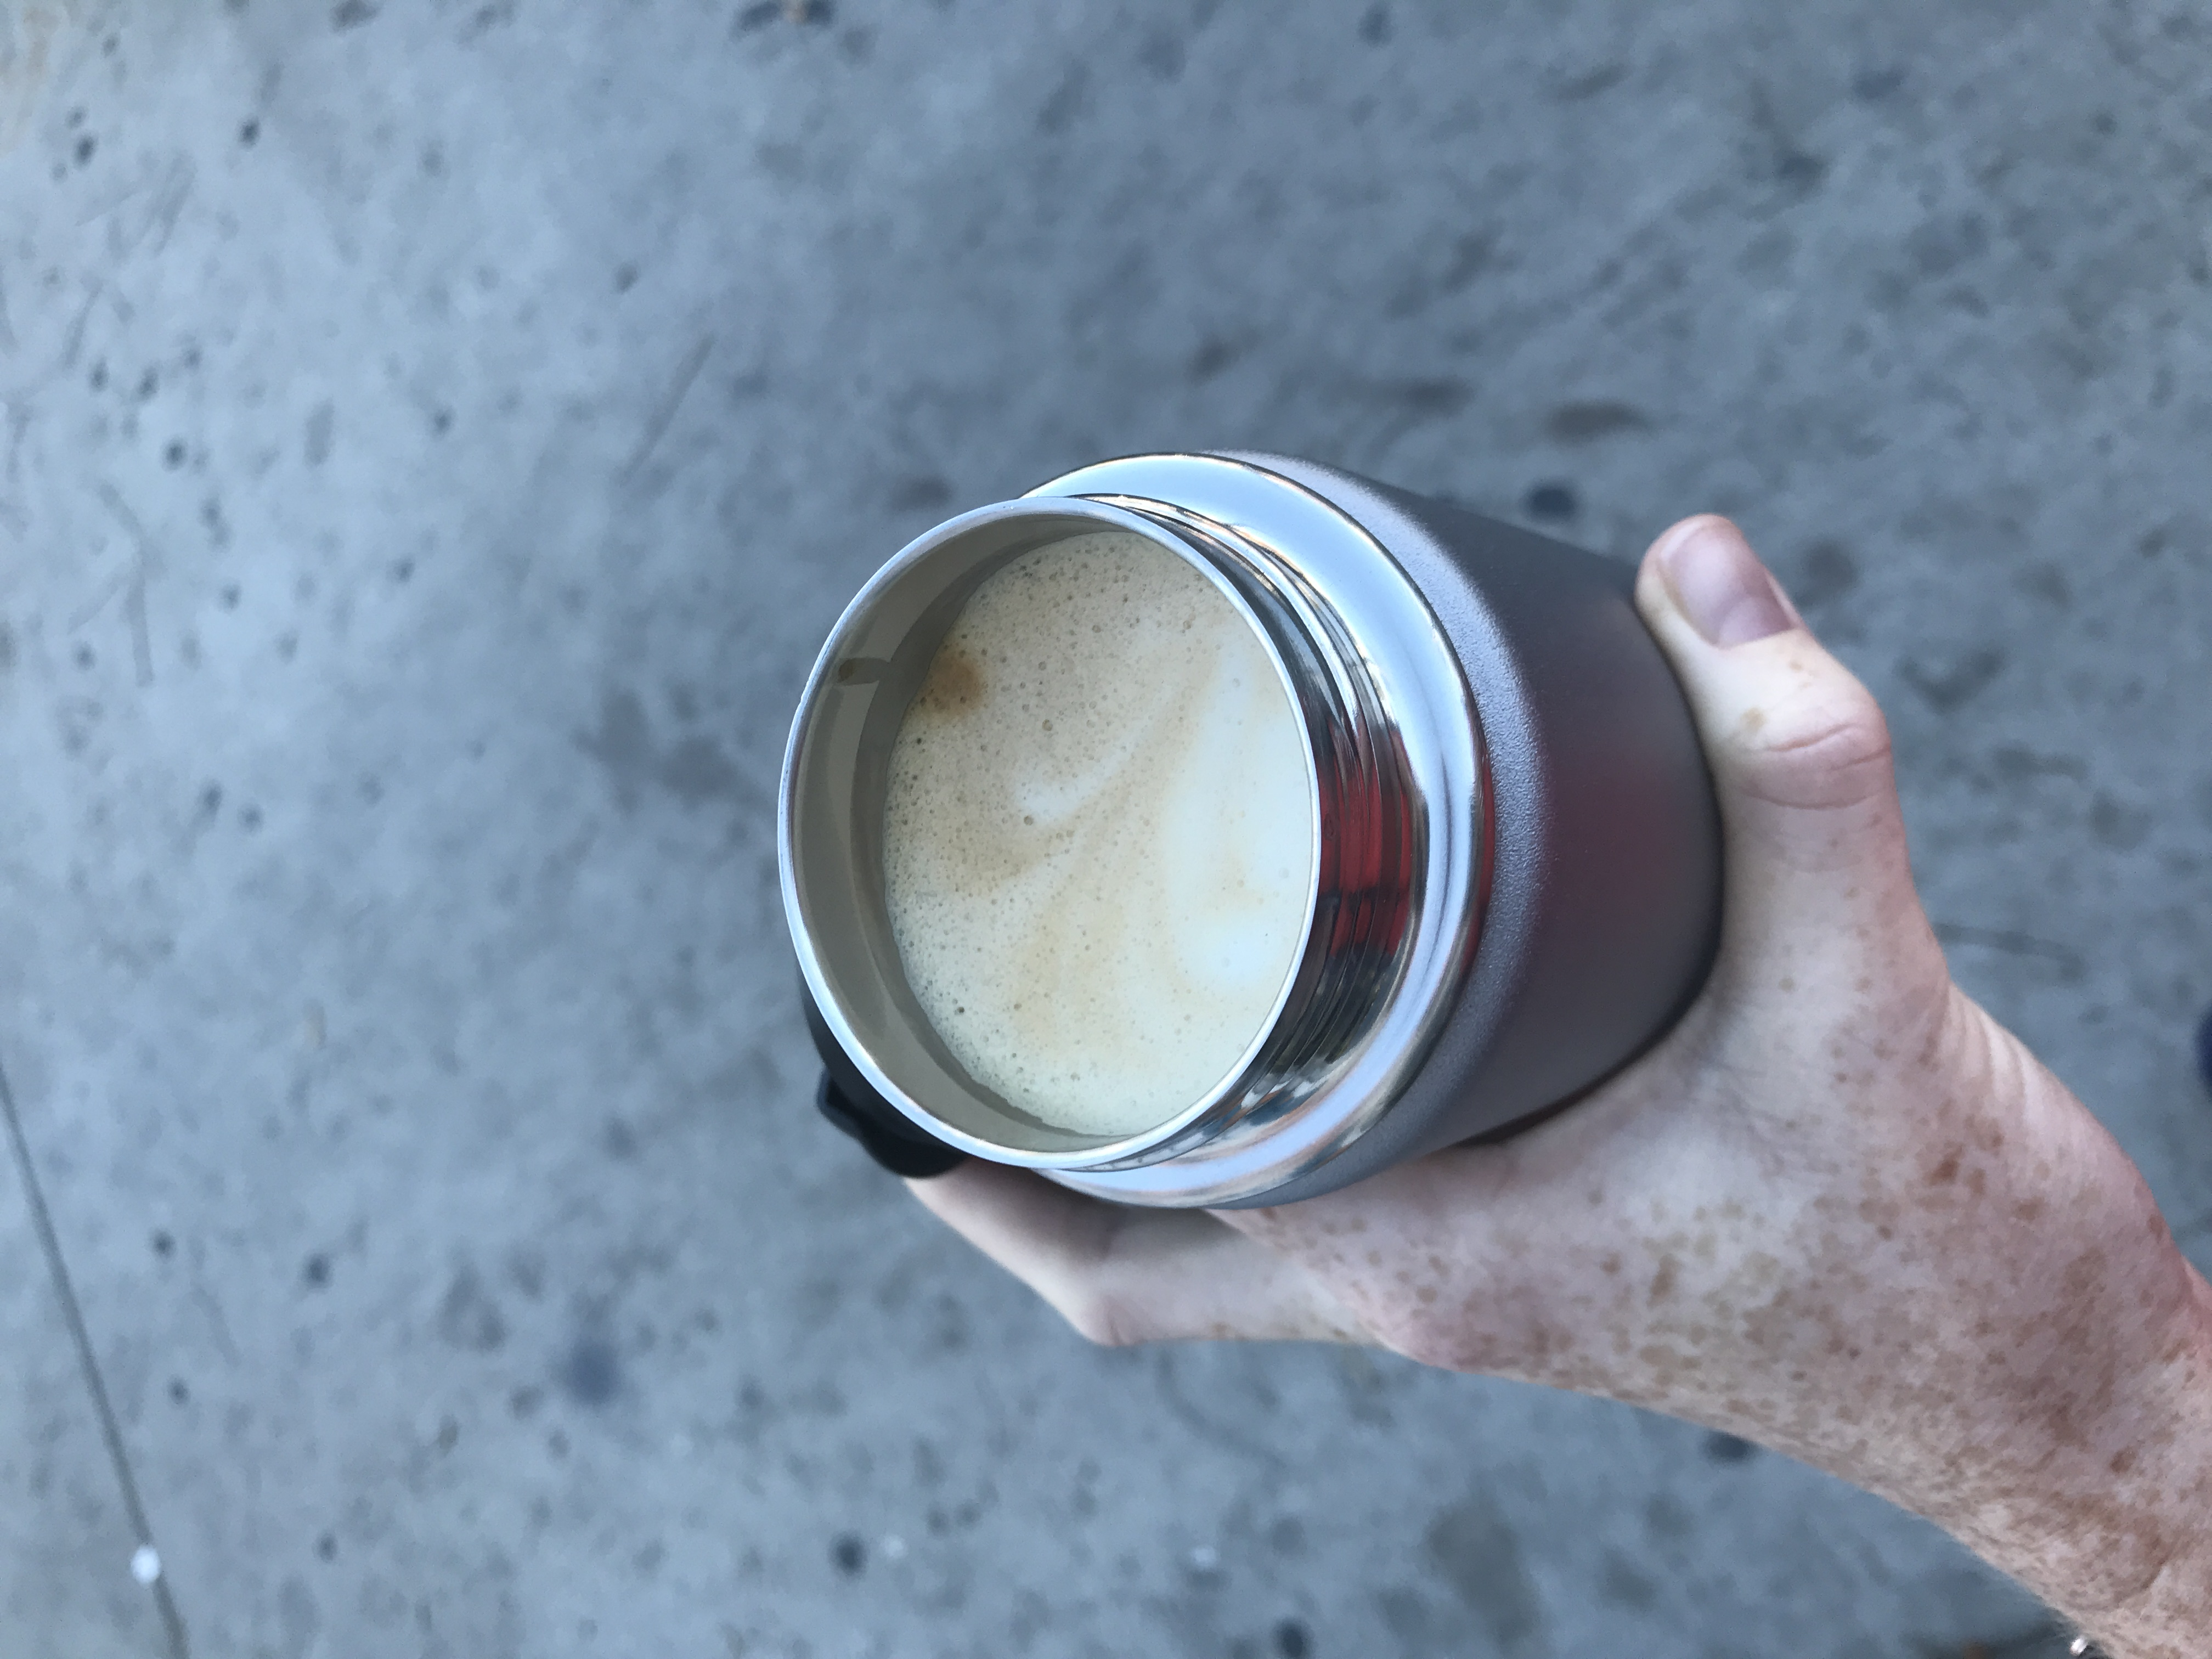 coffee to go! - Day 1 of 2019 I used my swanky thermos to take my latte on the road.